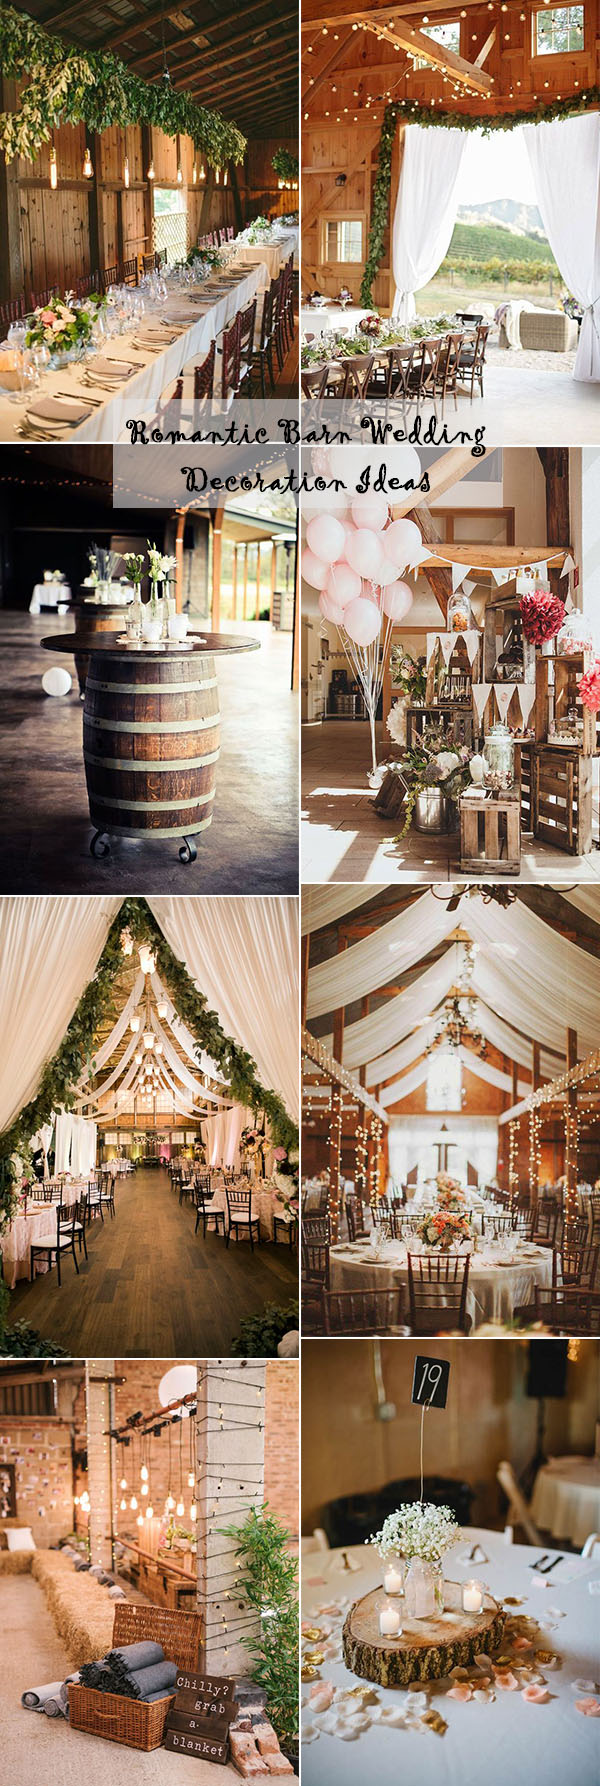 25 Sweet and Romantic Rustic Barn Wedding Decoration Ideas ...